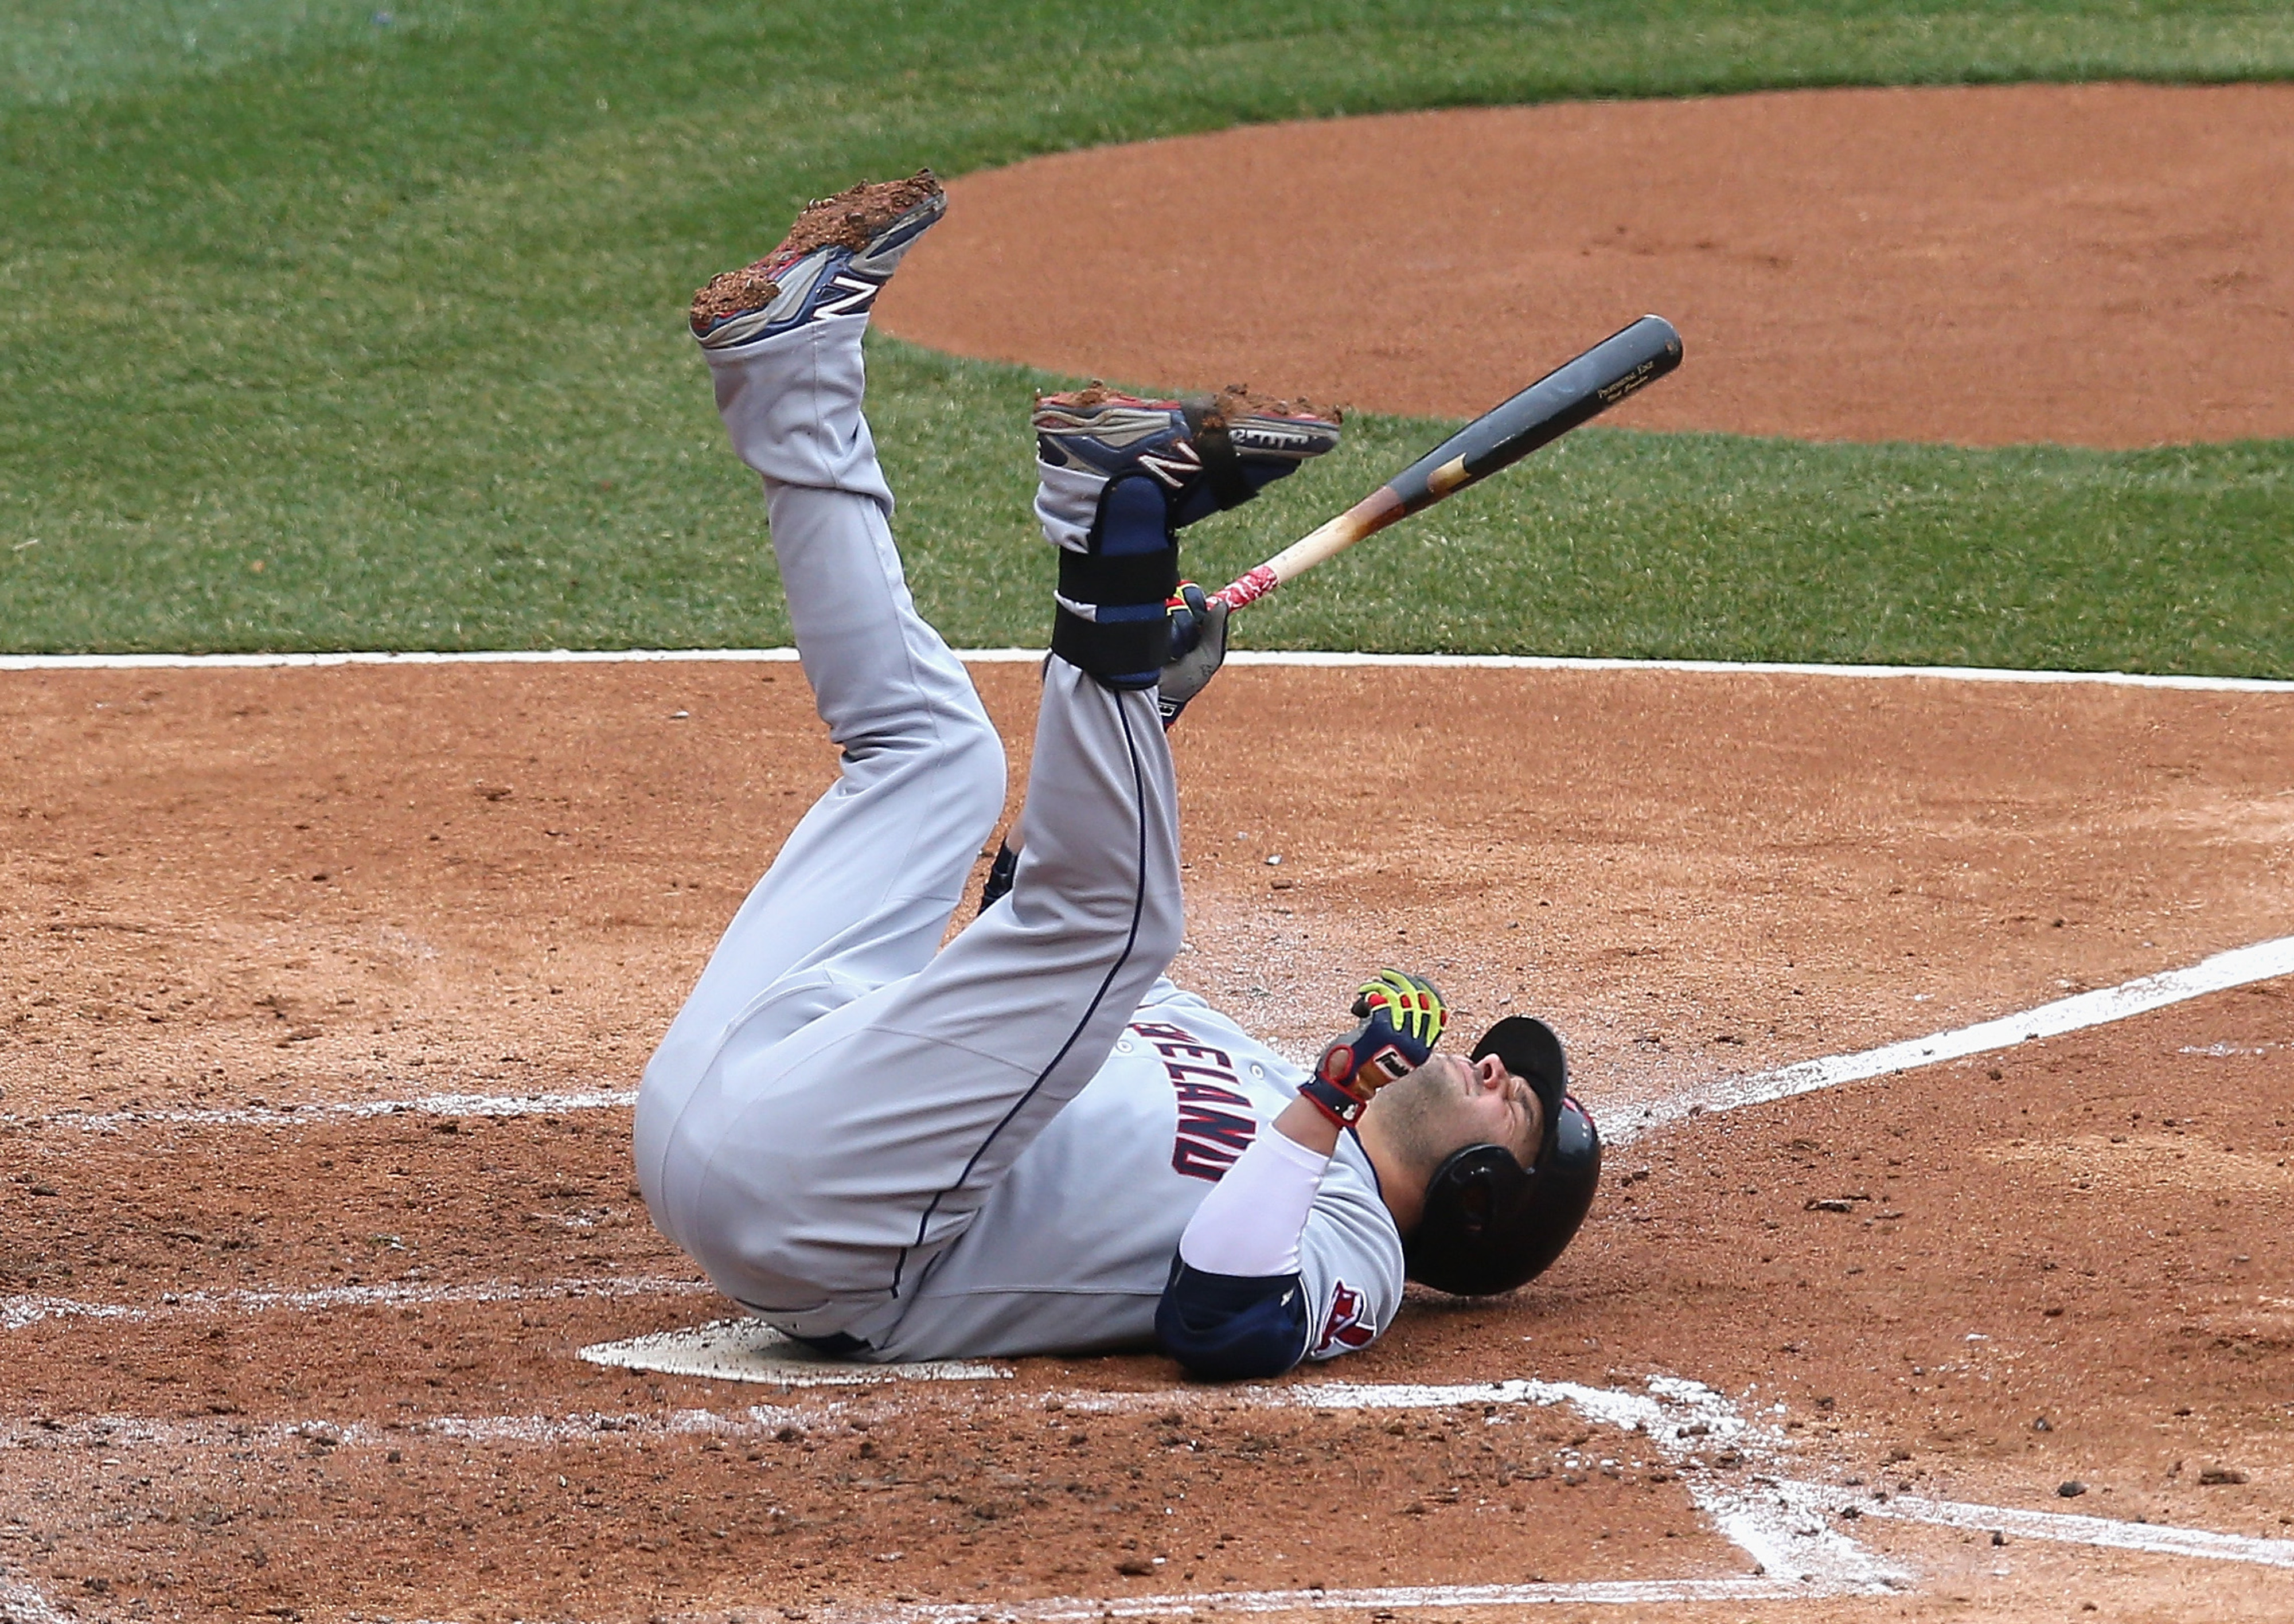 Befuddled with his results, Nick Swisher tries a new approach.